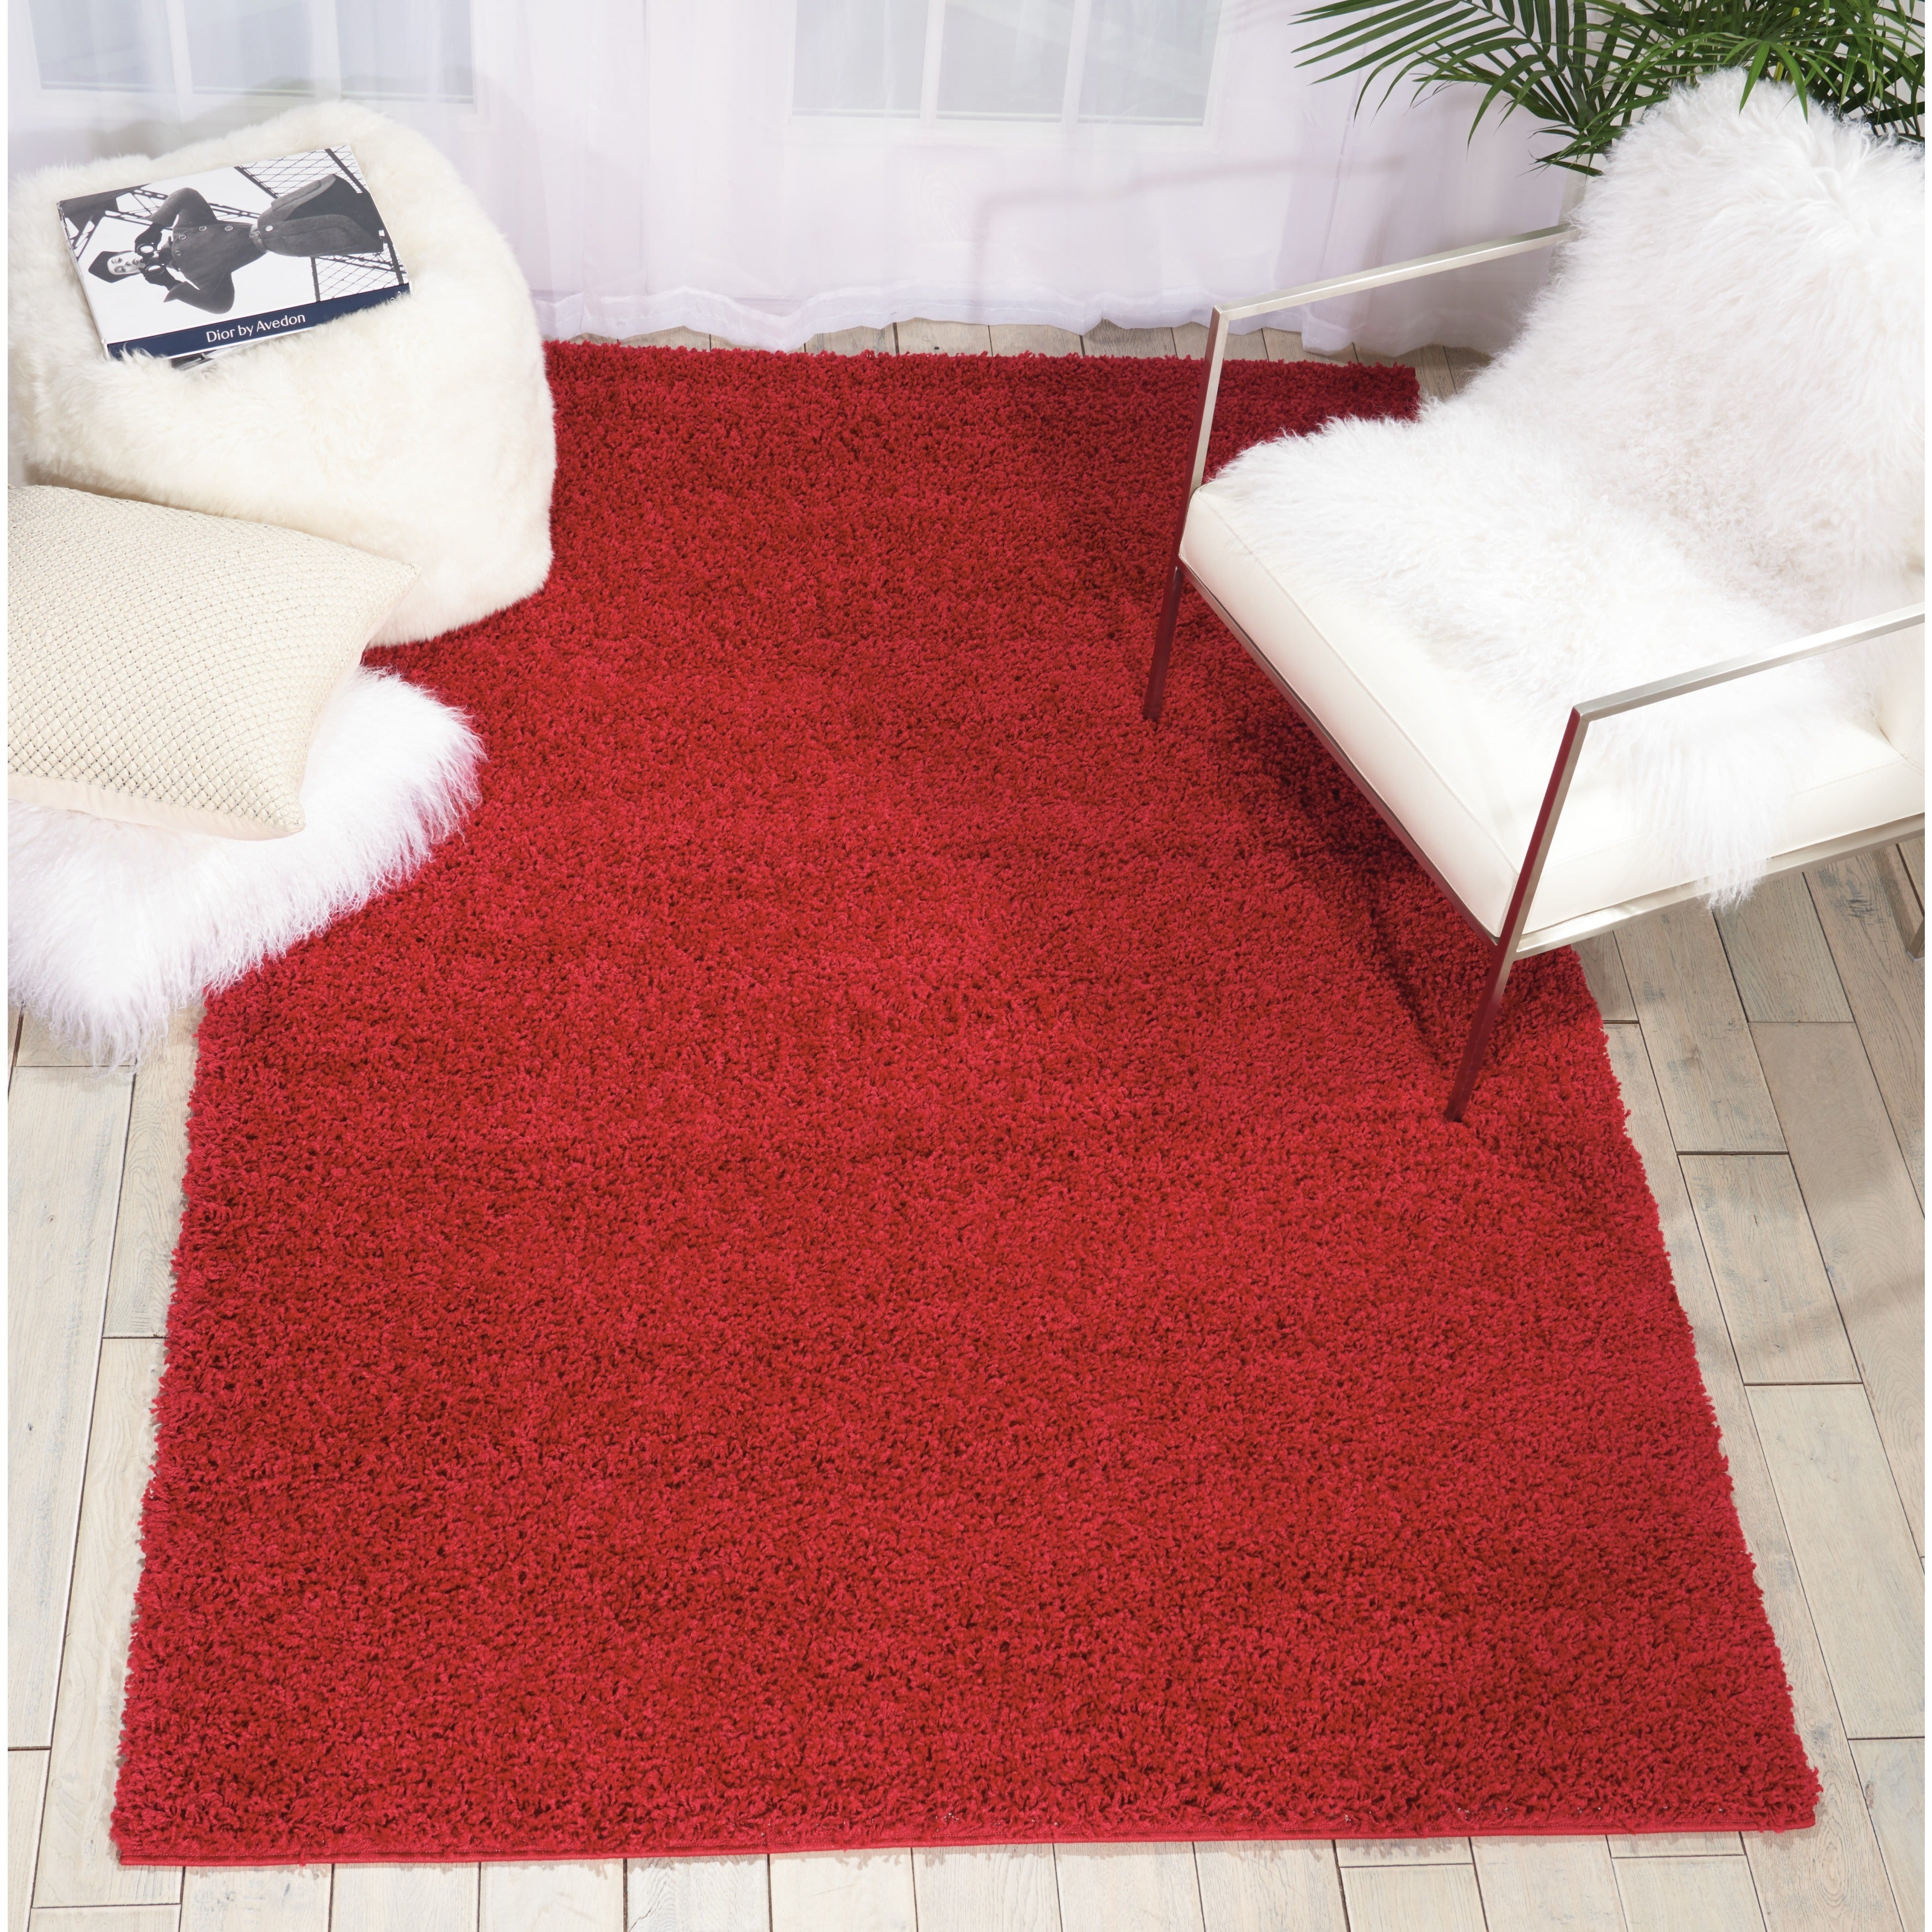 Rug Squared Woodstock Red Shag Rug (5 x 7) - 5 x 7 (Red - 5 x 7)